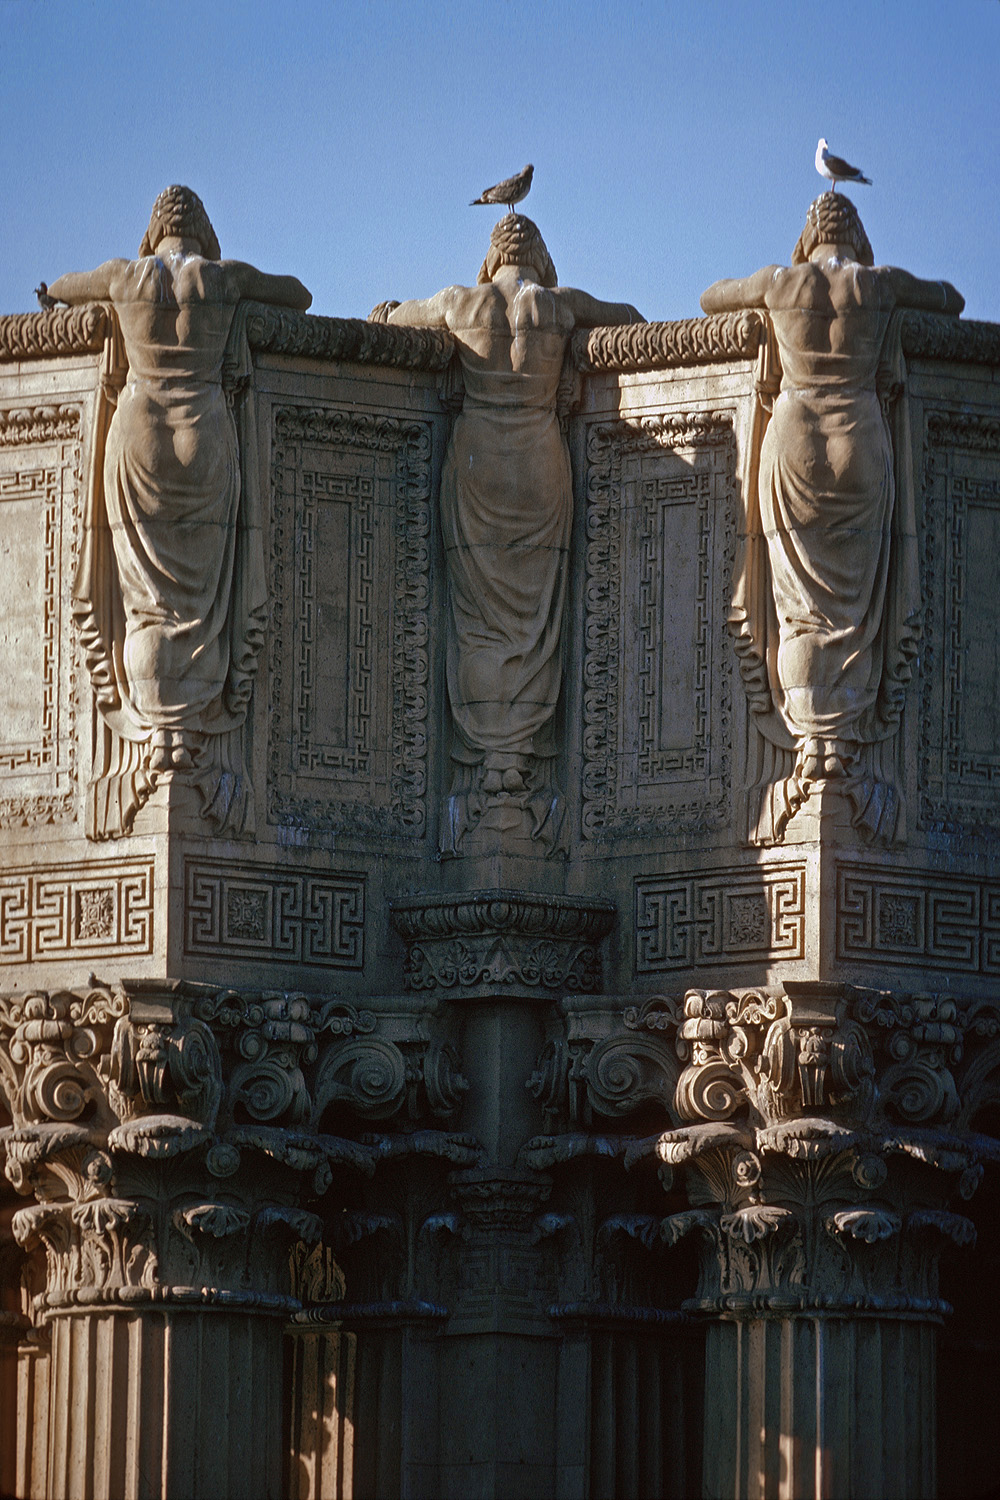 finearts Palace of Fine Arts, San Francisco, California, 1975